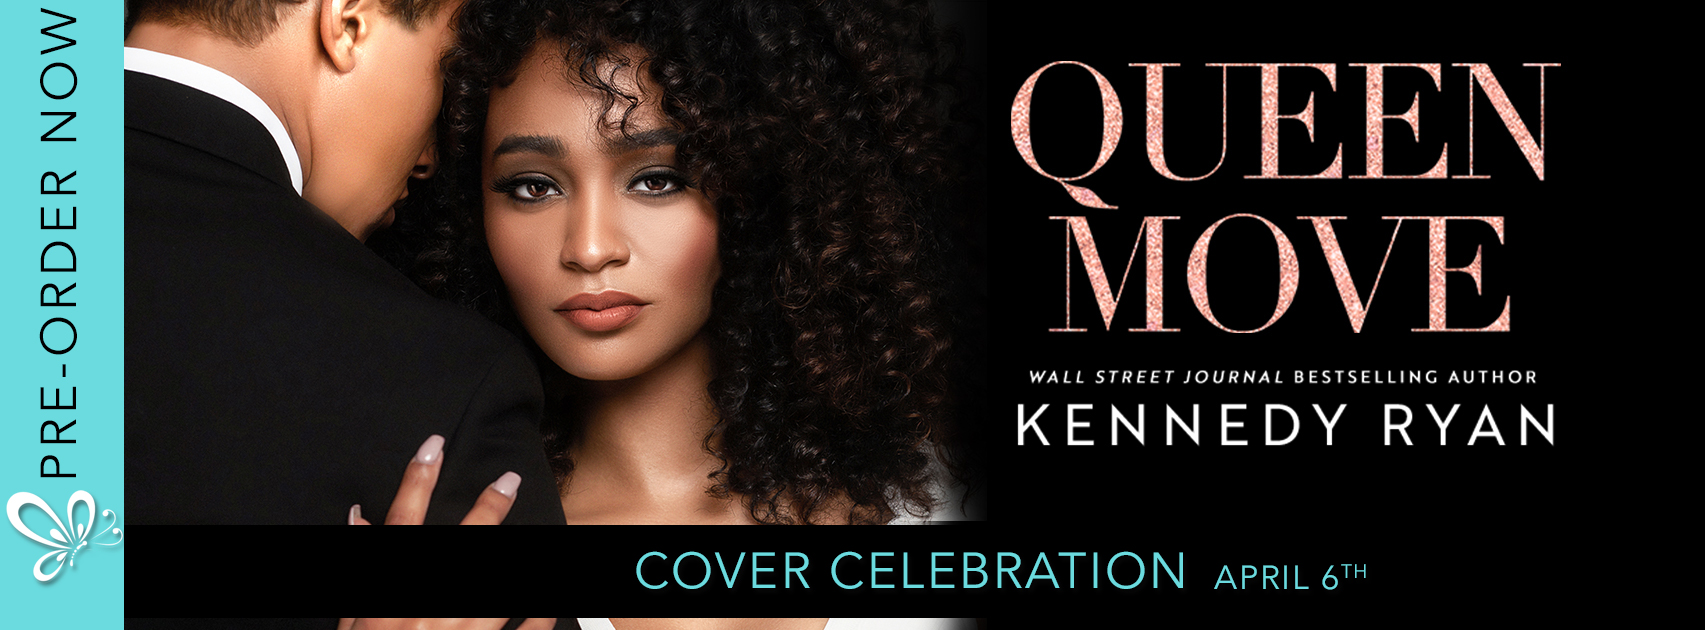 Cover Celebration! Queen Move by Kennedy Ryan